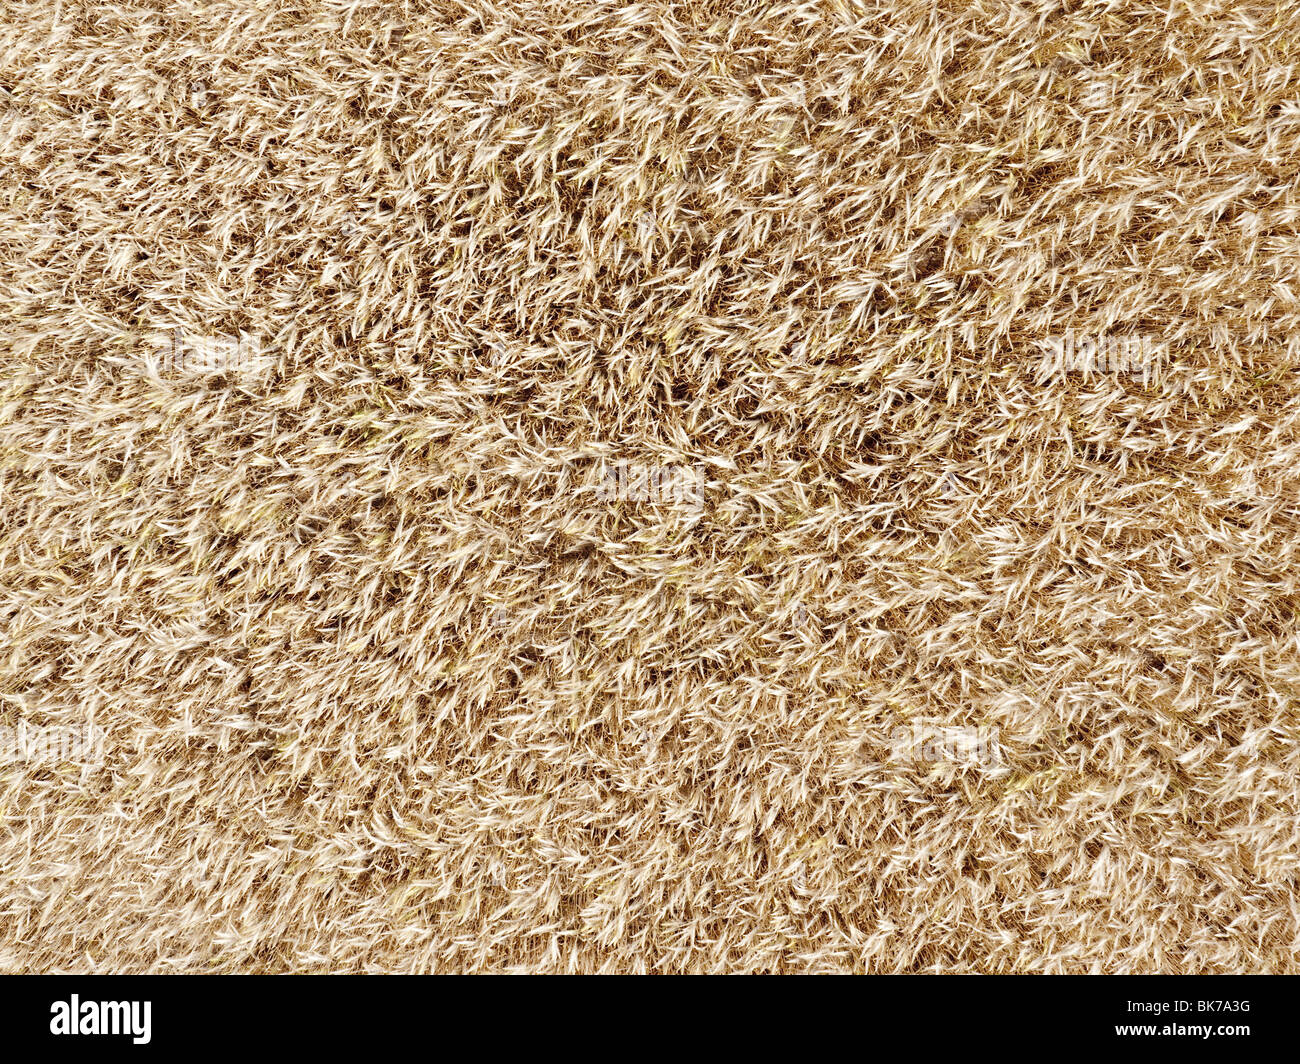 wheat field aerial view - Stock Image